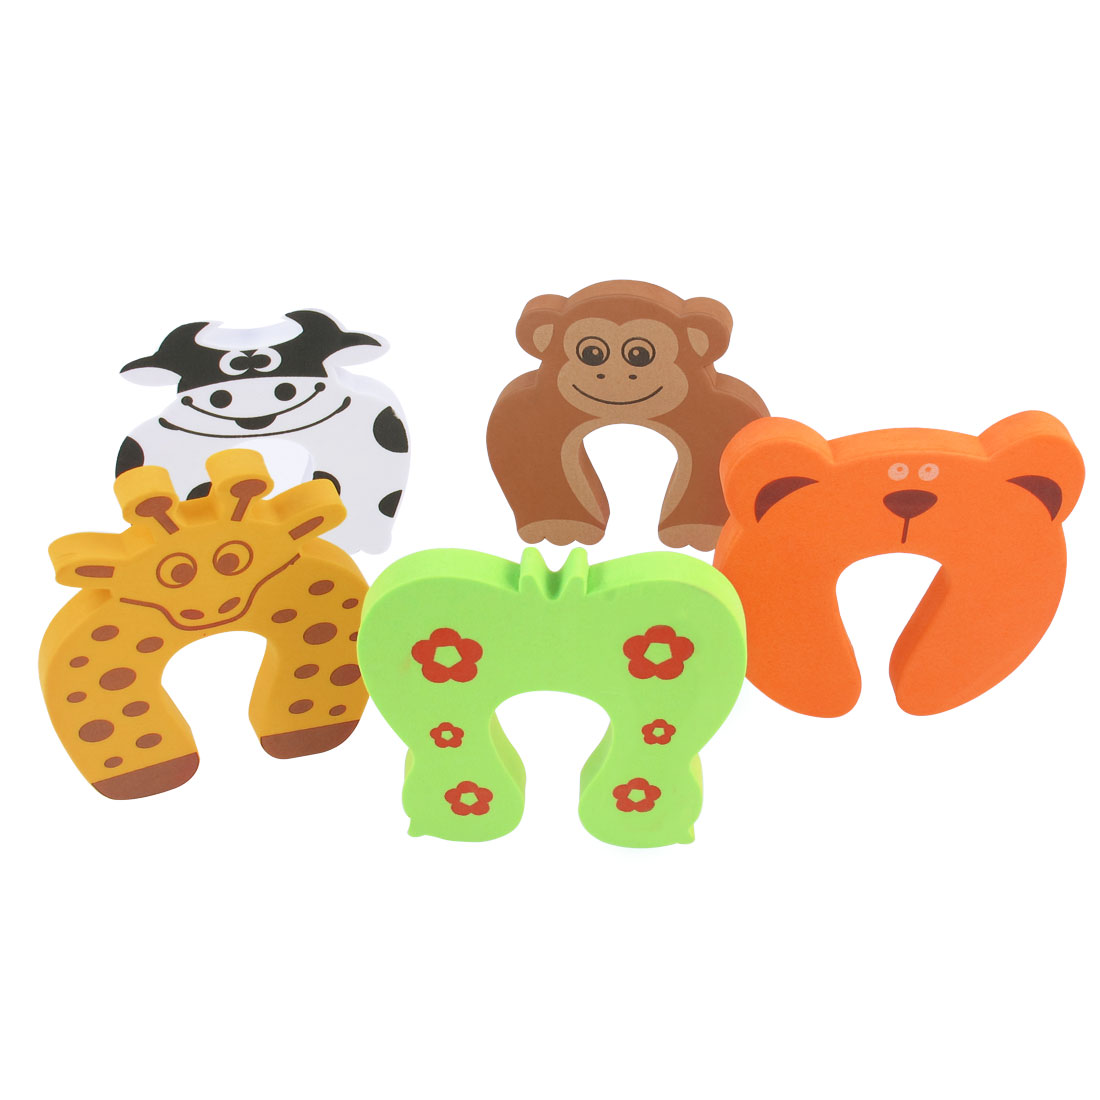 5 Pcs White Orange Light Green Foam Cow Bear Design Door Stopper Cushions